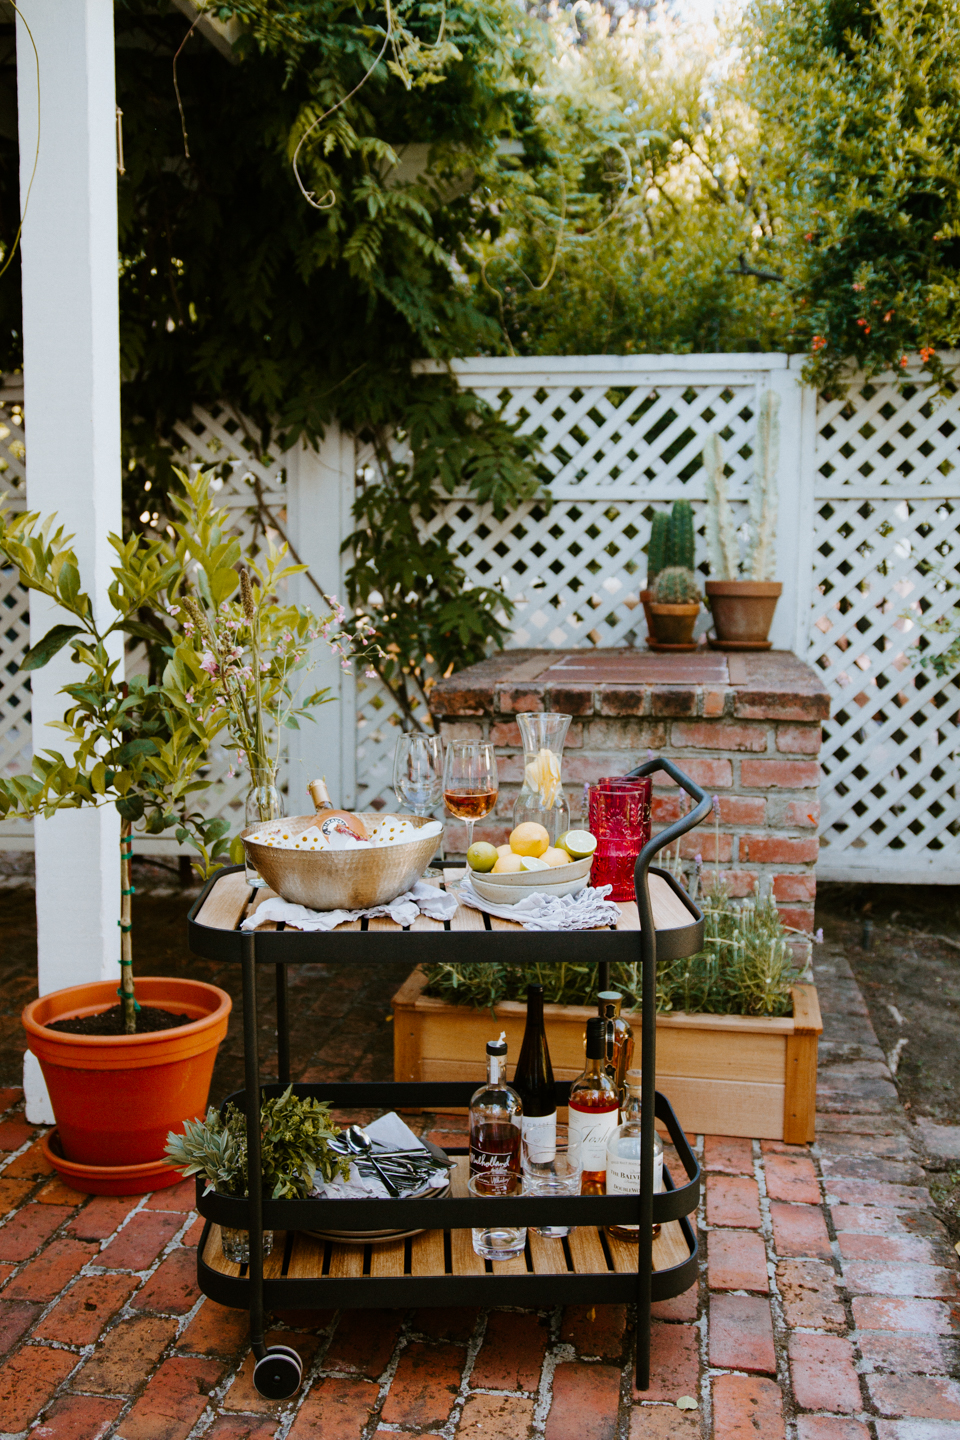 Summer Ready | New Backyard Patio Set and Bar Cart